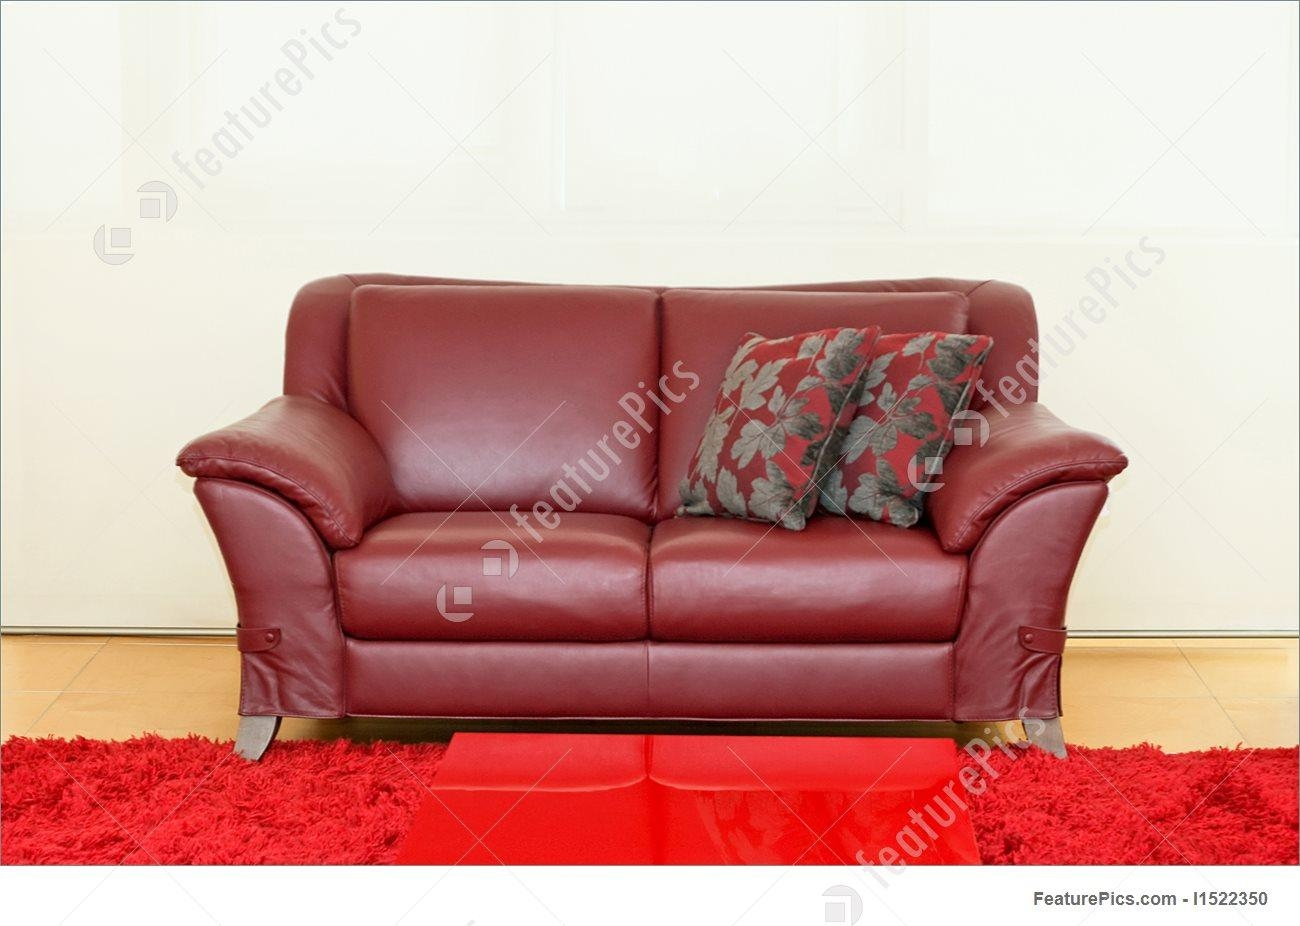 Dark Red Sofa Image With Regard To Dark Red Leather Sofas (View 20 of 20)